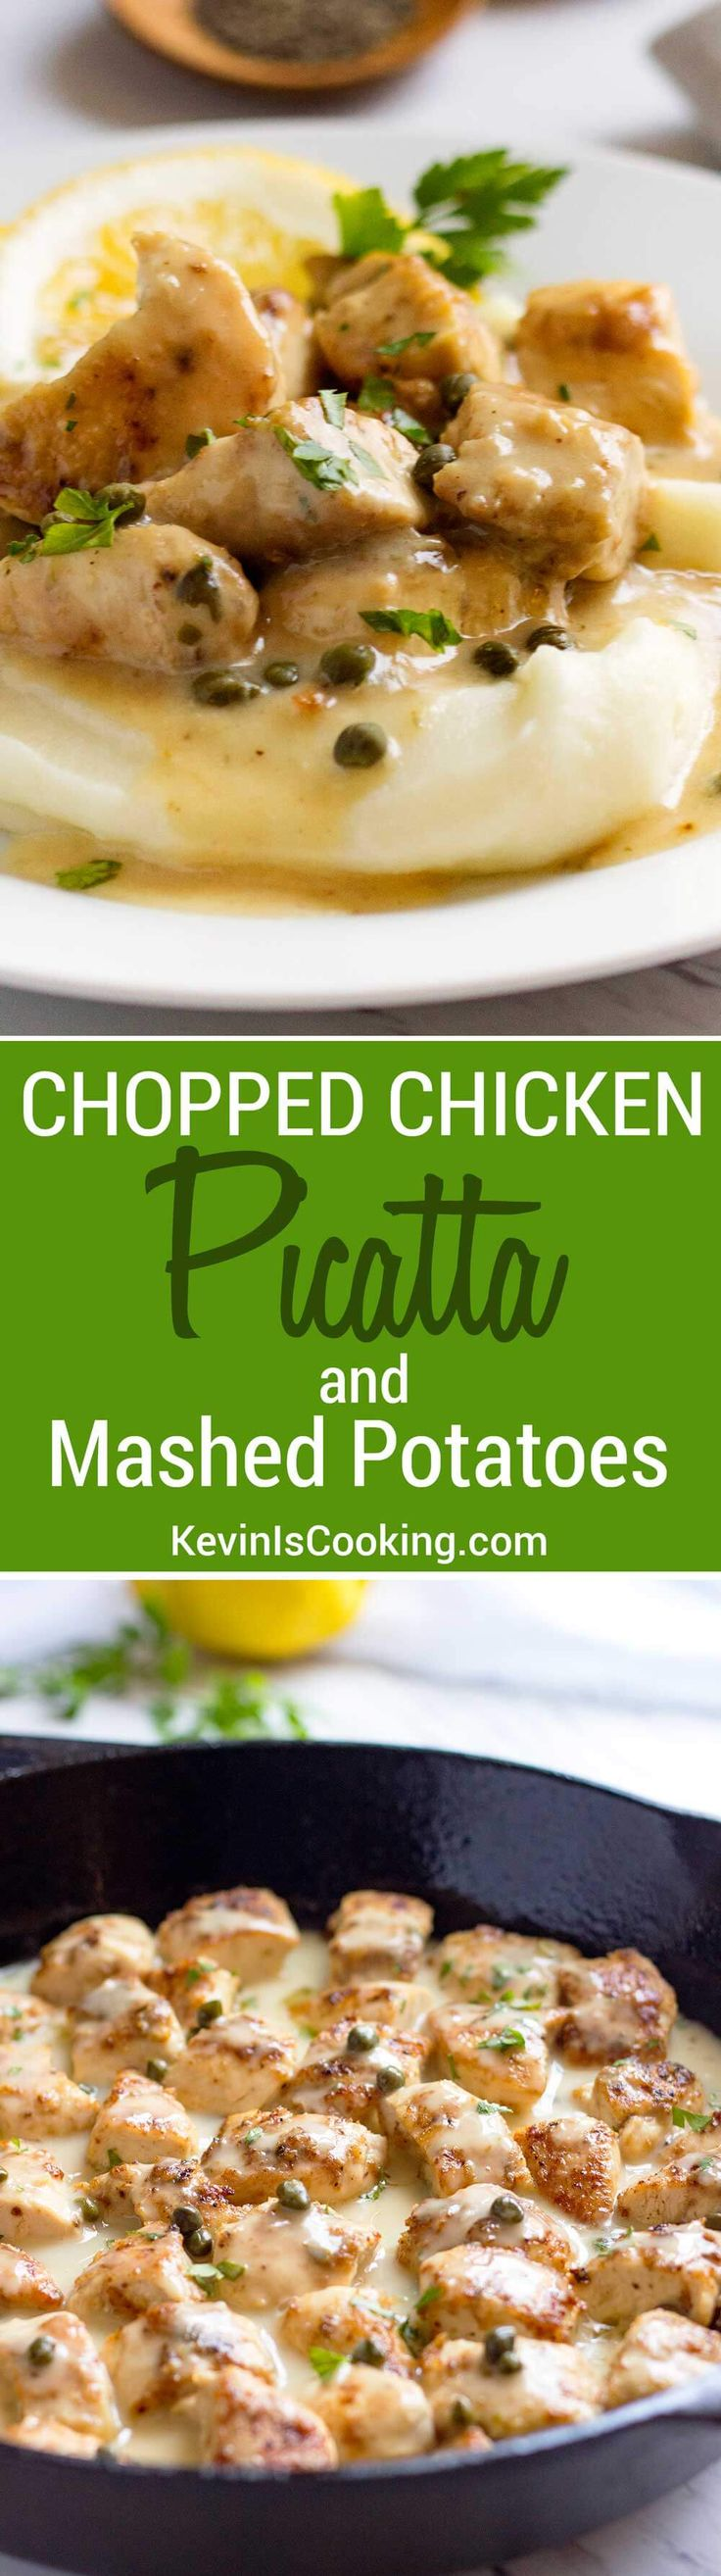 This house favorite uses chopped chicken that gets browned, drenched in a easy, lemony caper pan sauce and tops mashed potatoes for a perfect comfort dinner.